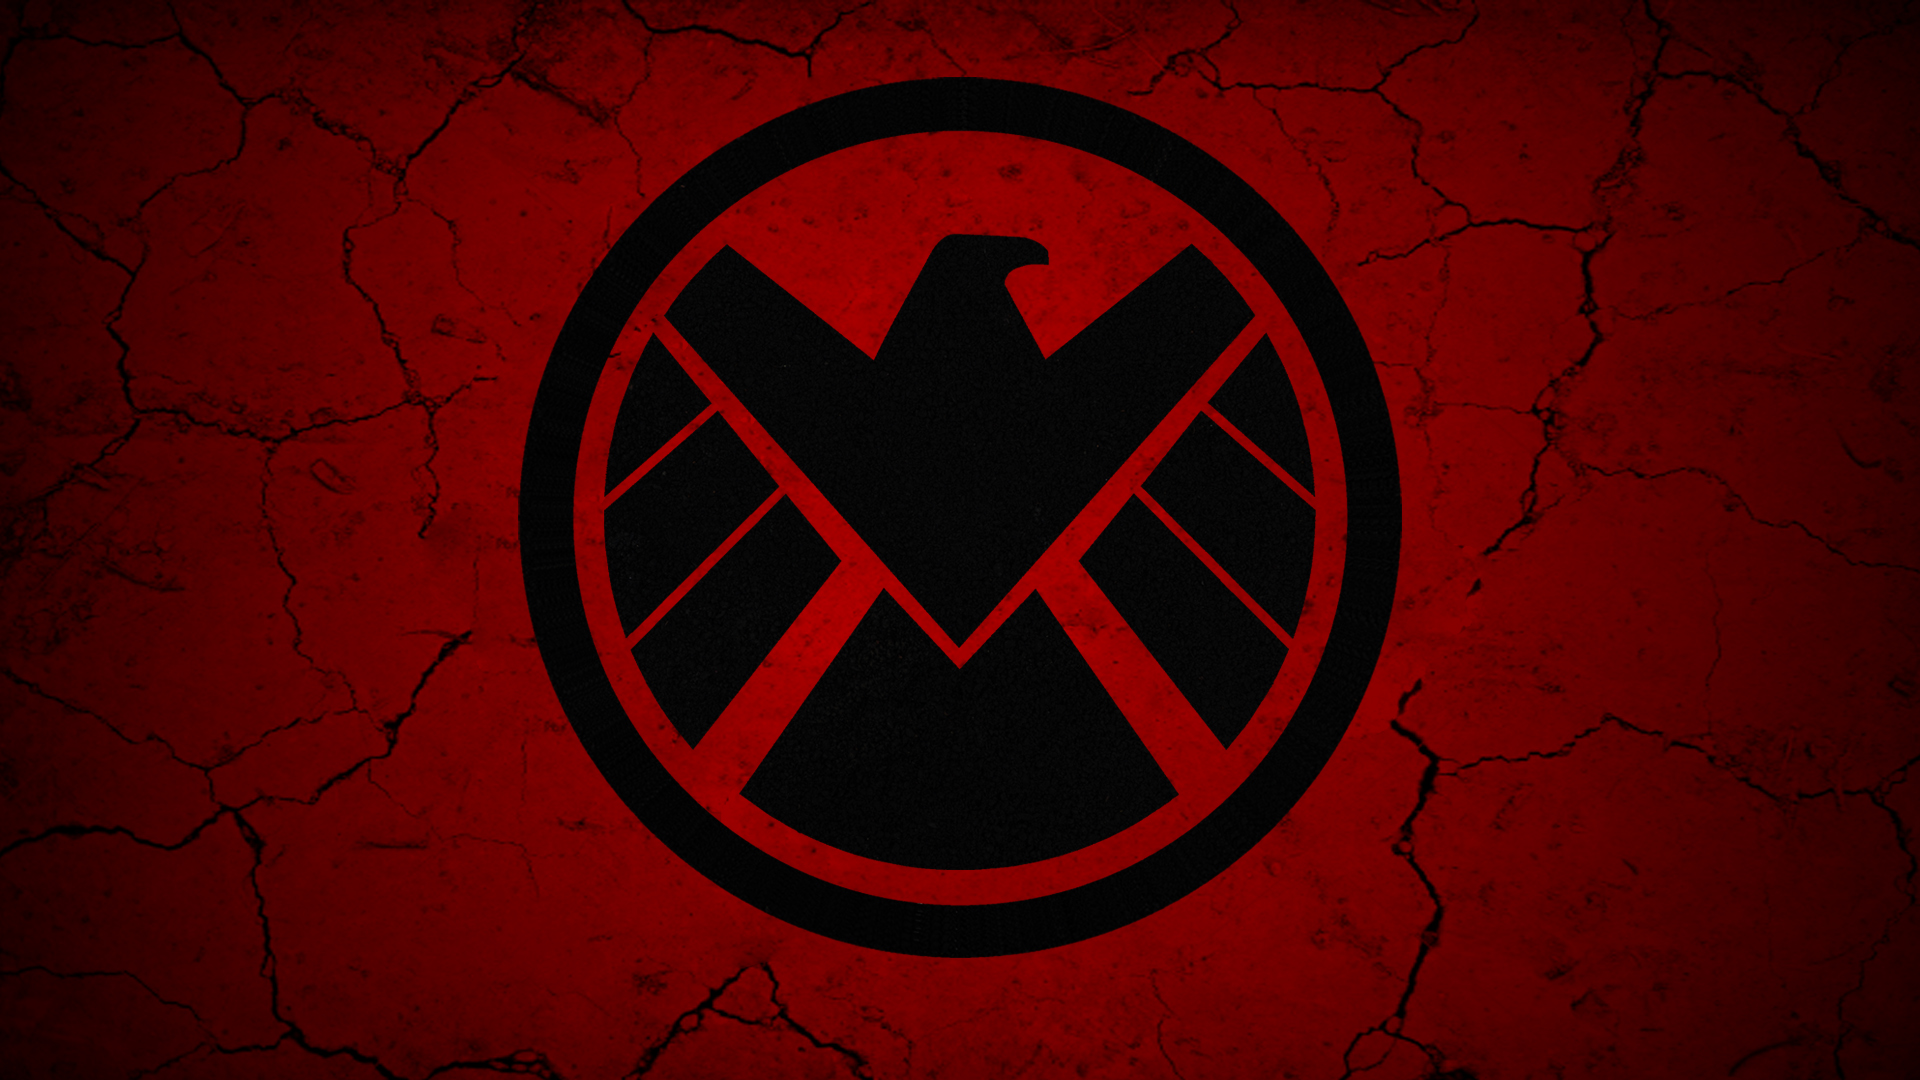 agents of shield season 2 wallpaper 1920x1080 by masteroffunny d8467ud 1920x1080